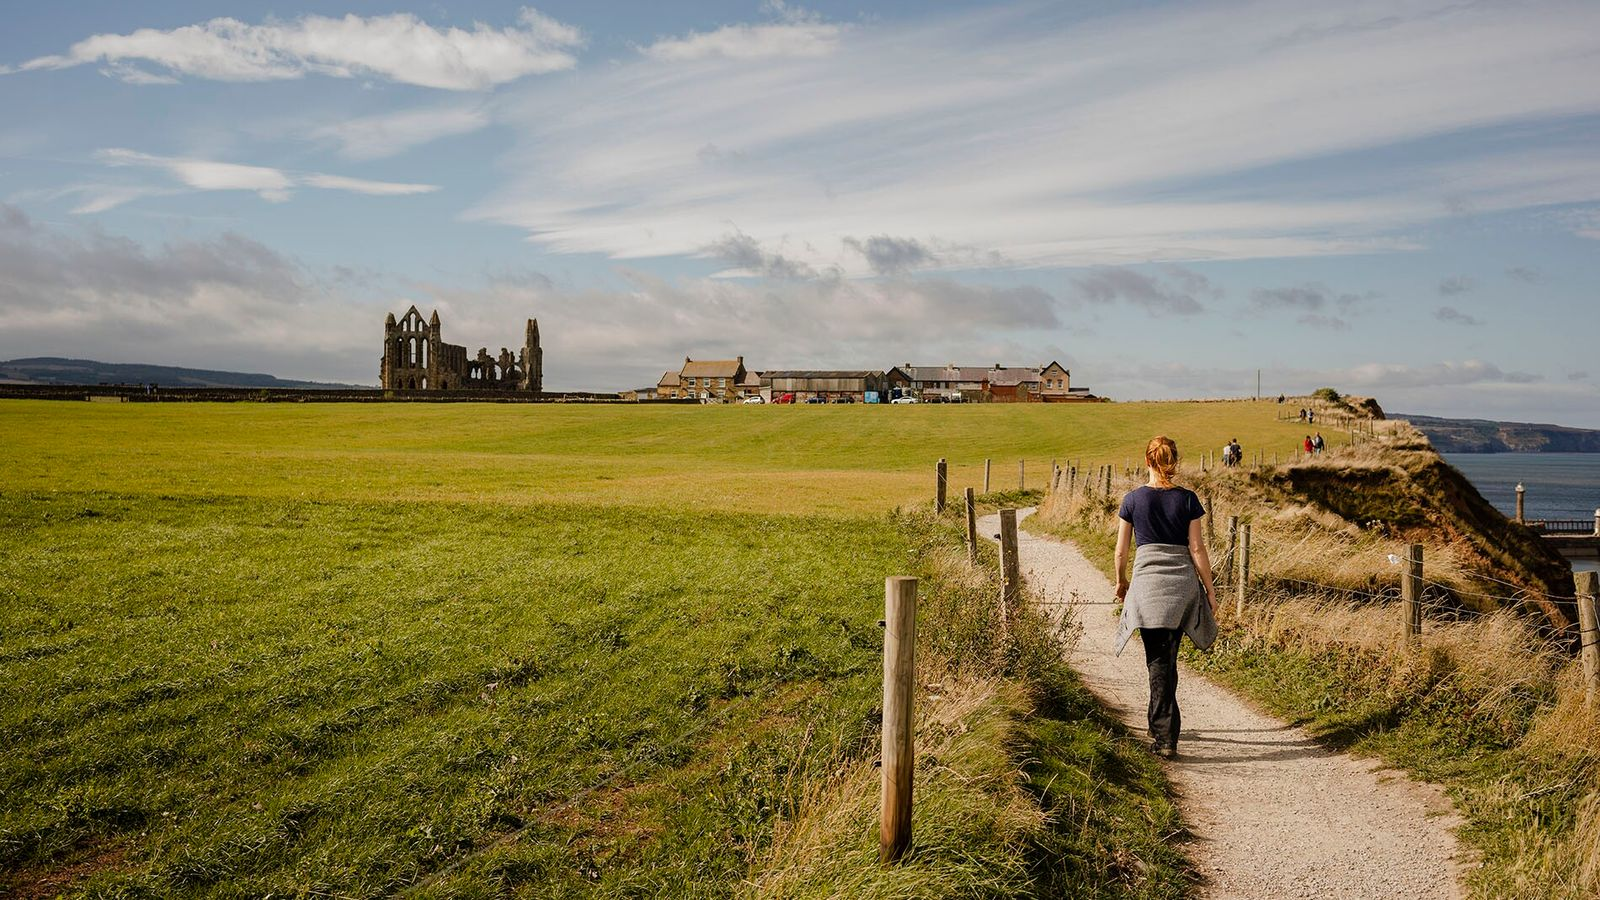 A woman walks along the scenic path between Whitby and Robinshood Bay.